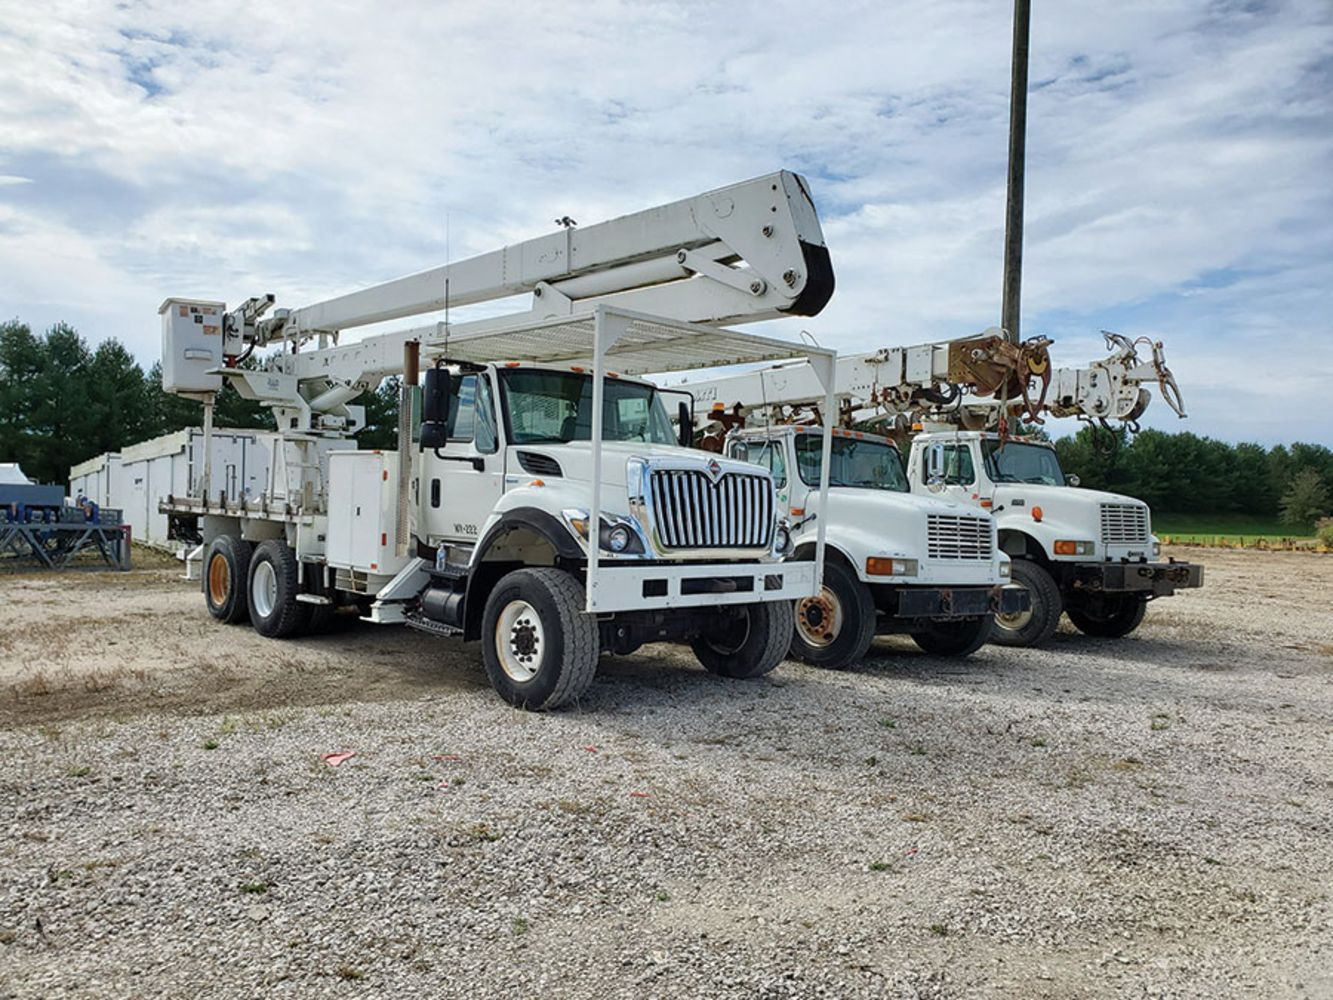 CW Electric Inc. - DAY 1 OF 2 - Huge Amount of CATERPILLAR Repair Parts, Utility Trucks & More!